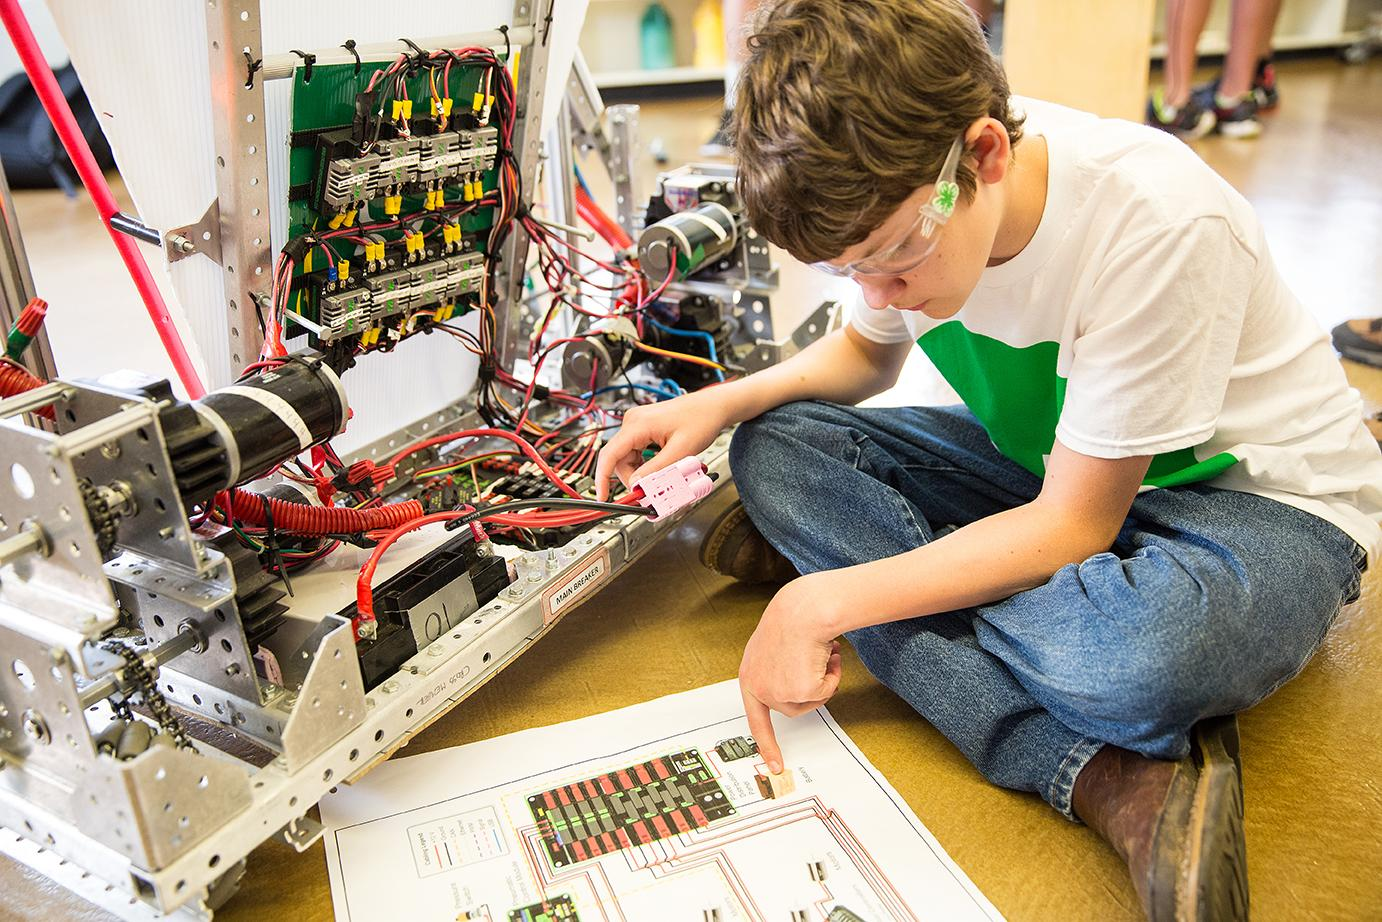 child reads instructions while putting together large robot